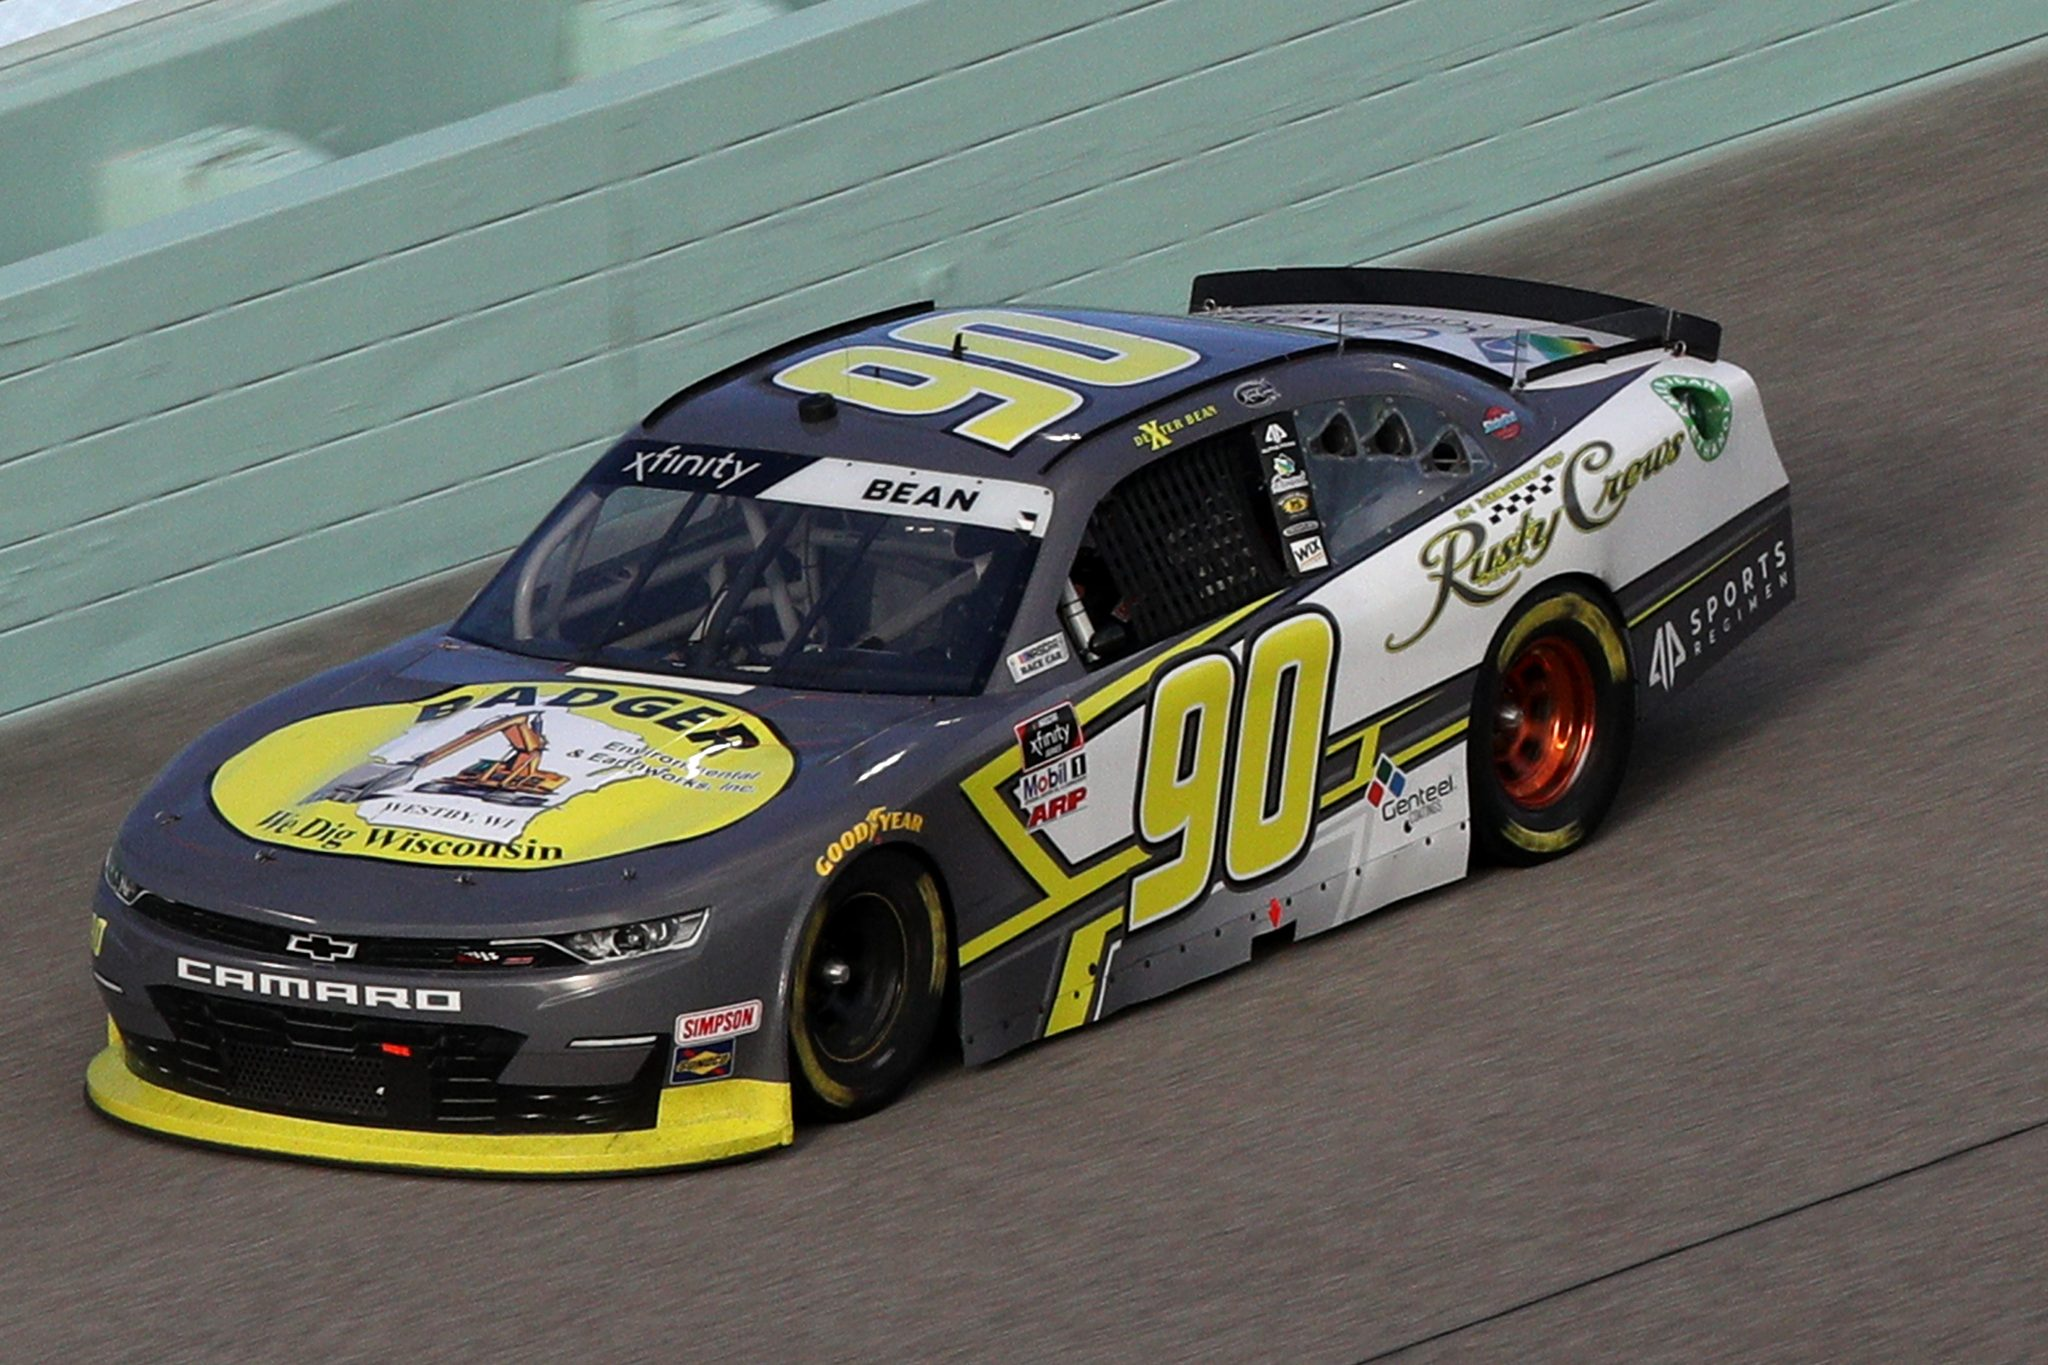 HOMESTEAD, FLORIDA - FEBRUARY 27: Dexter Bean, driver of the #90 Chinchor Electric/Danus Chevrolet, drives during the NASCAR Xfinity Series Contender Boats 250 at Homestead-Miami Speedway on February 27, 2021 in Homestead, Florida. (Photo by Sean Gardner/Getty Images) | Getty Images